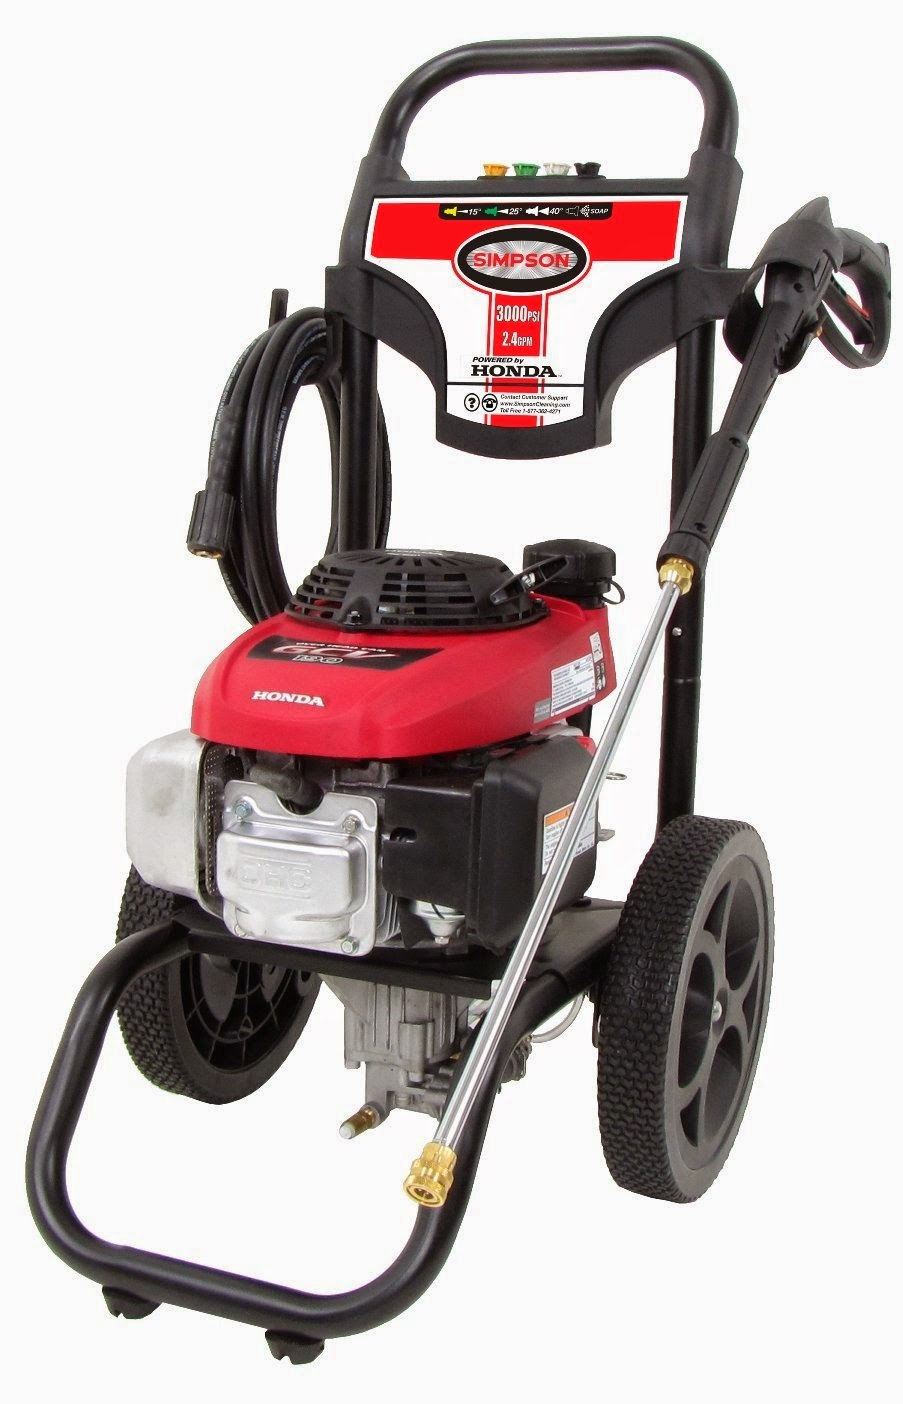 SIMPSON Gas Power Pressure Washer With Honda Engine